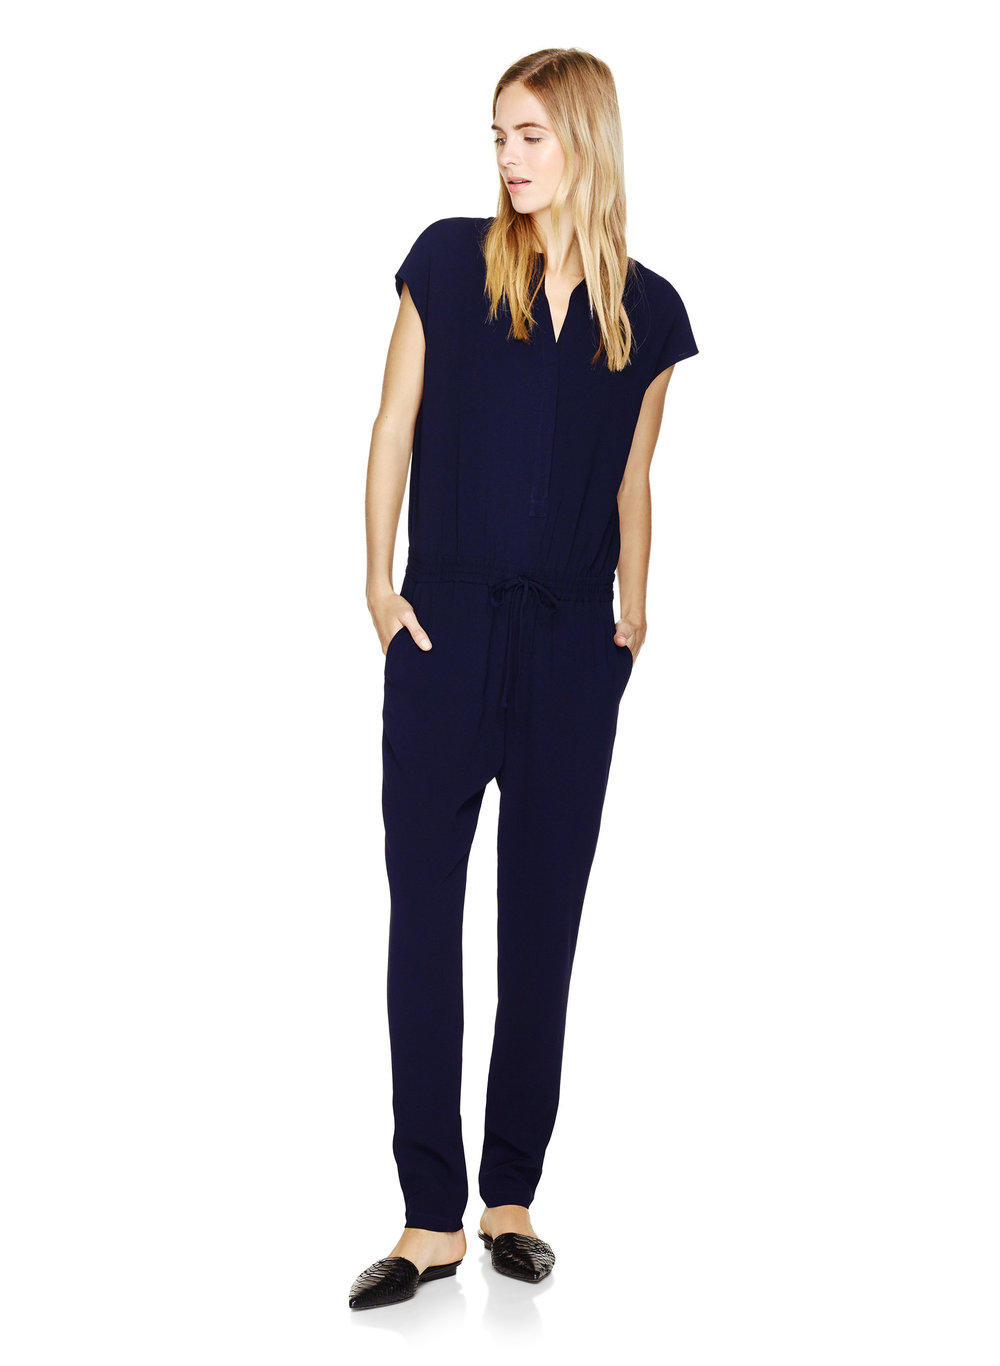 this Donnie Jumpsuit by Babton is just to die for! I opted out this time and am going to wait for Spring on this little beauty. $165